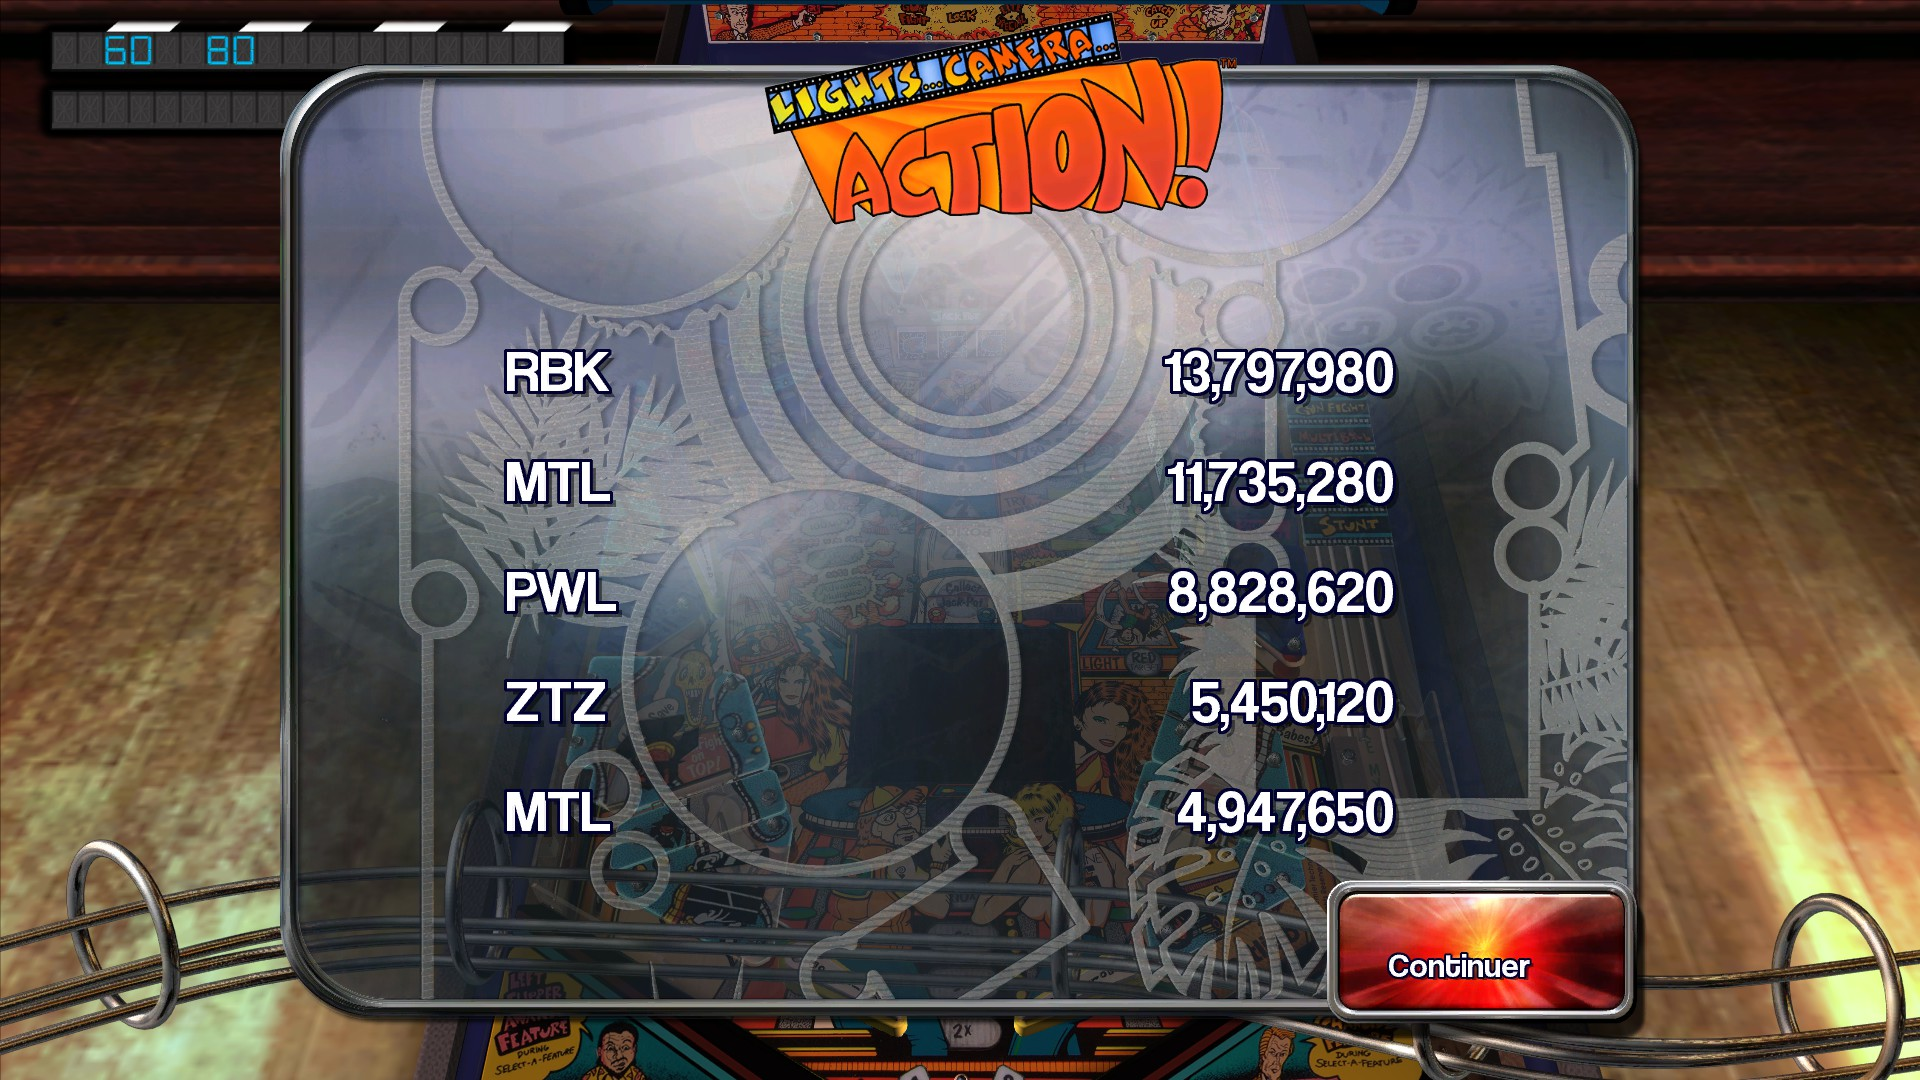 Mantalow: Pinball Arcade: Lights...Camera...Action! (PC) 11,735,280 points on 2015-10-04 12:34:05